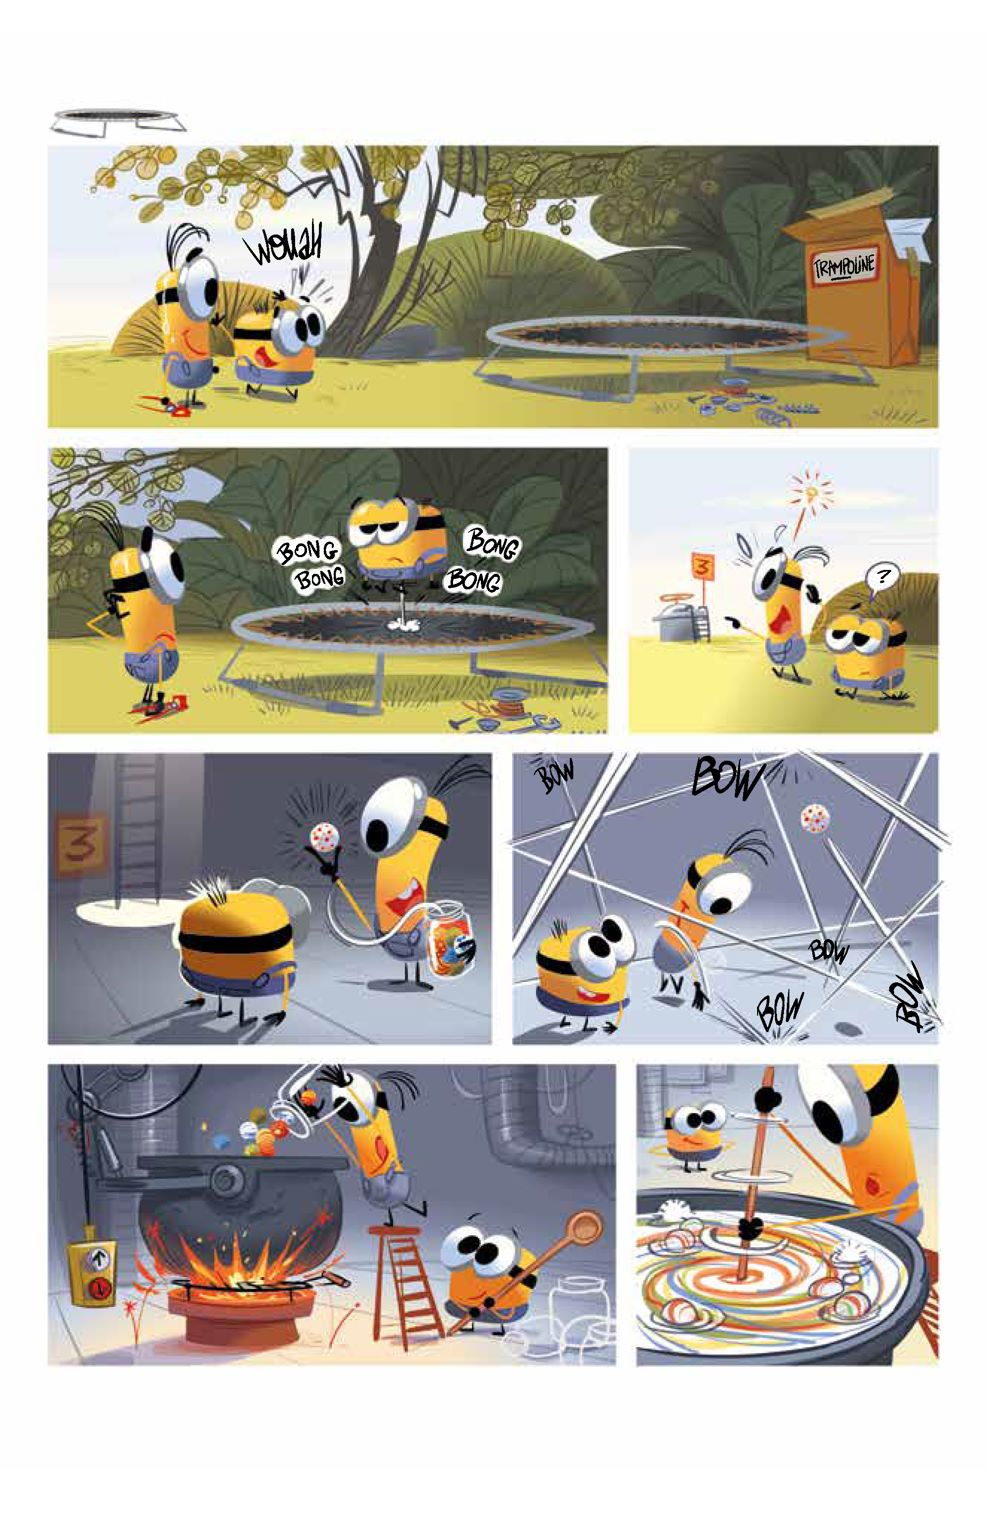 Minions_5.2_Sports_Intt__Page_3 ComicList Previews: MINIONS VOLUME 5 SPORTS #2